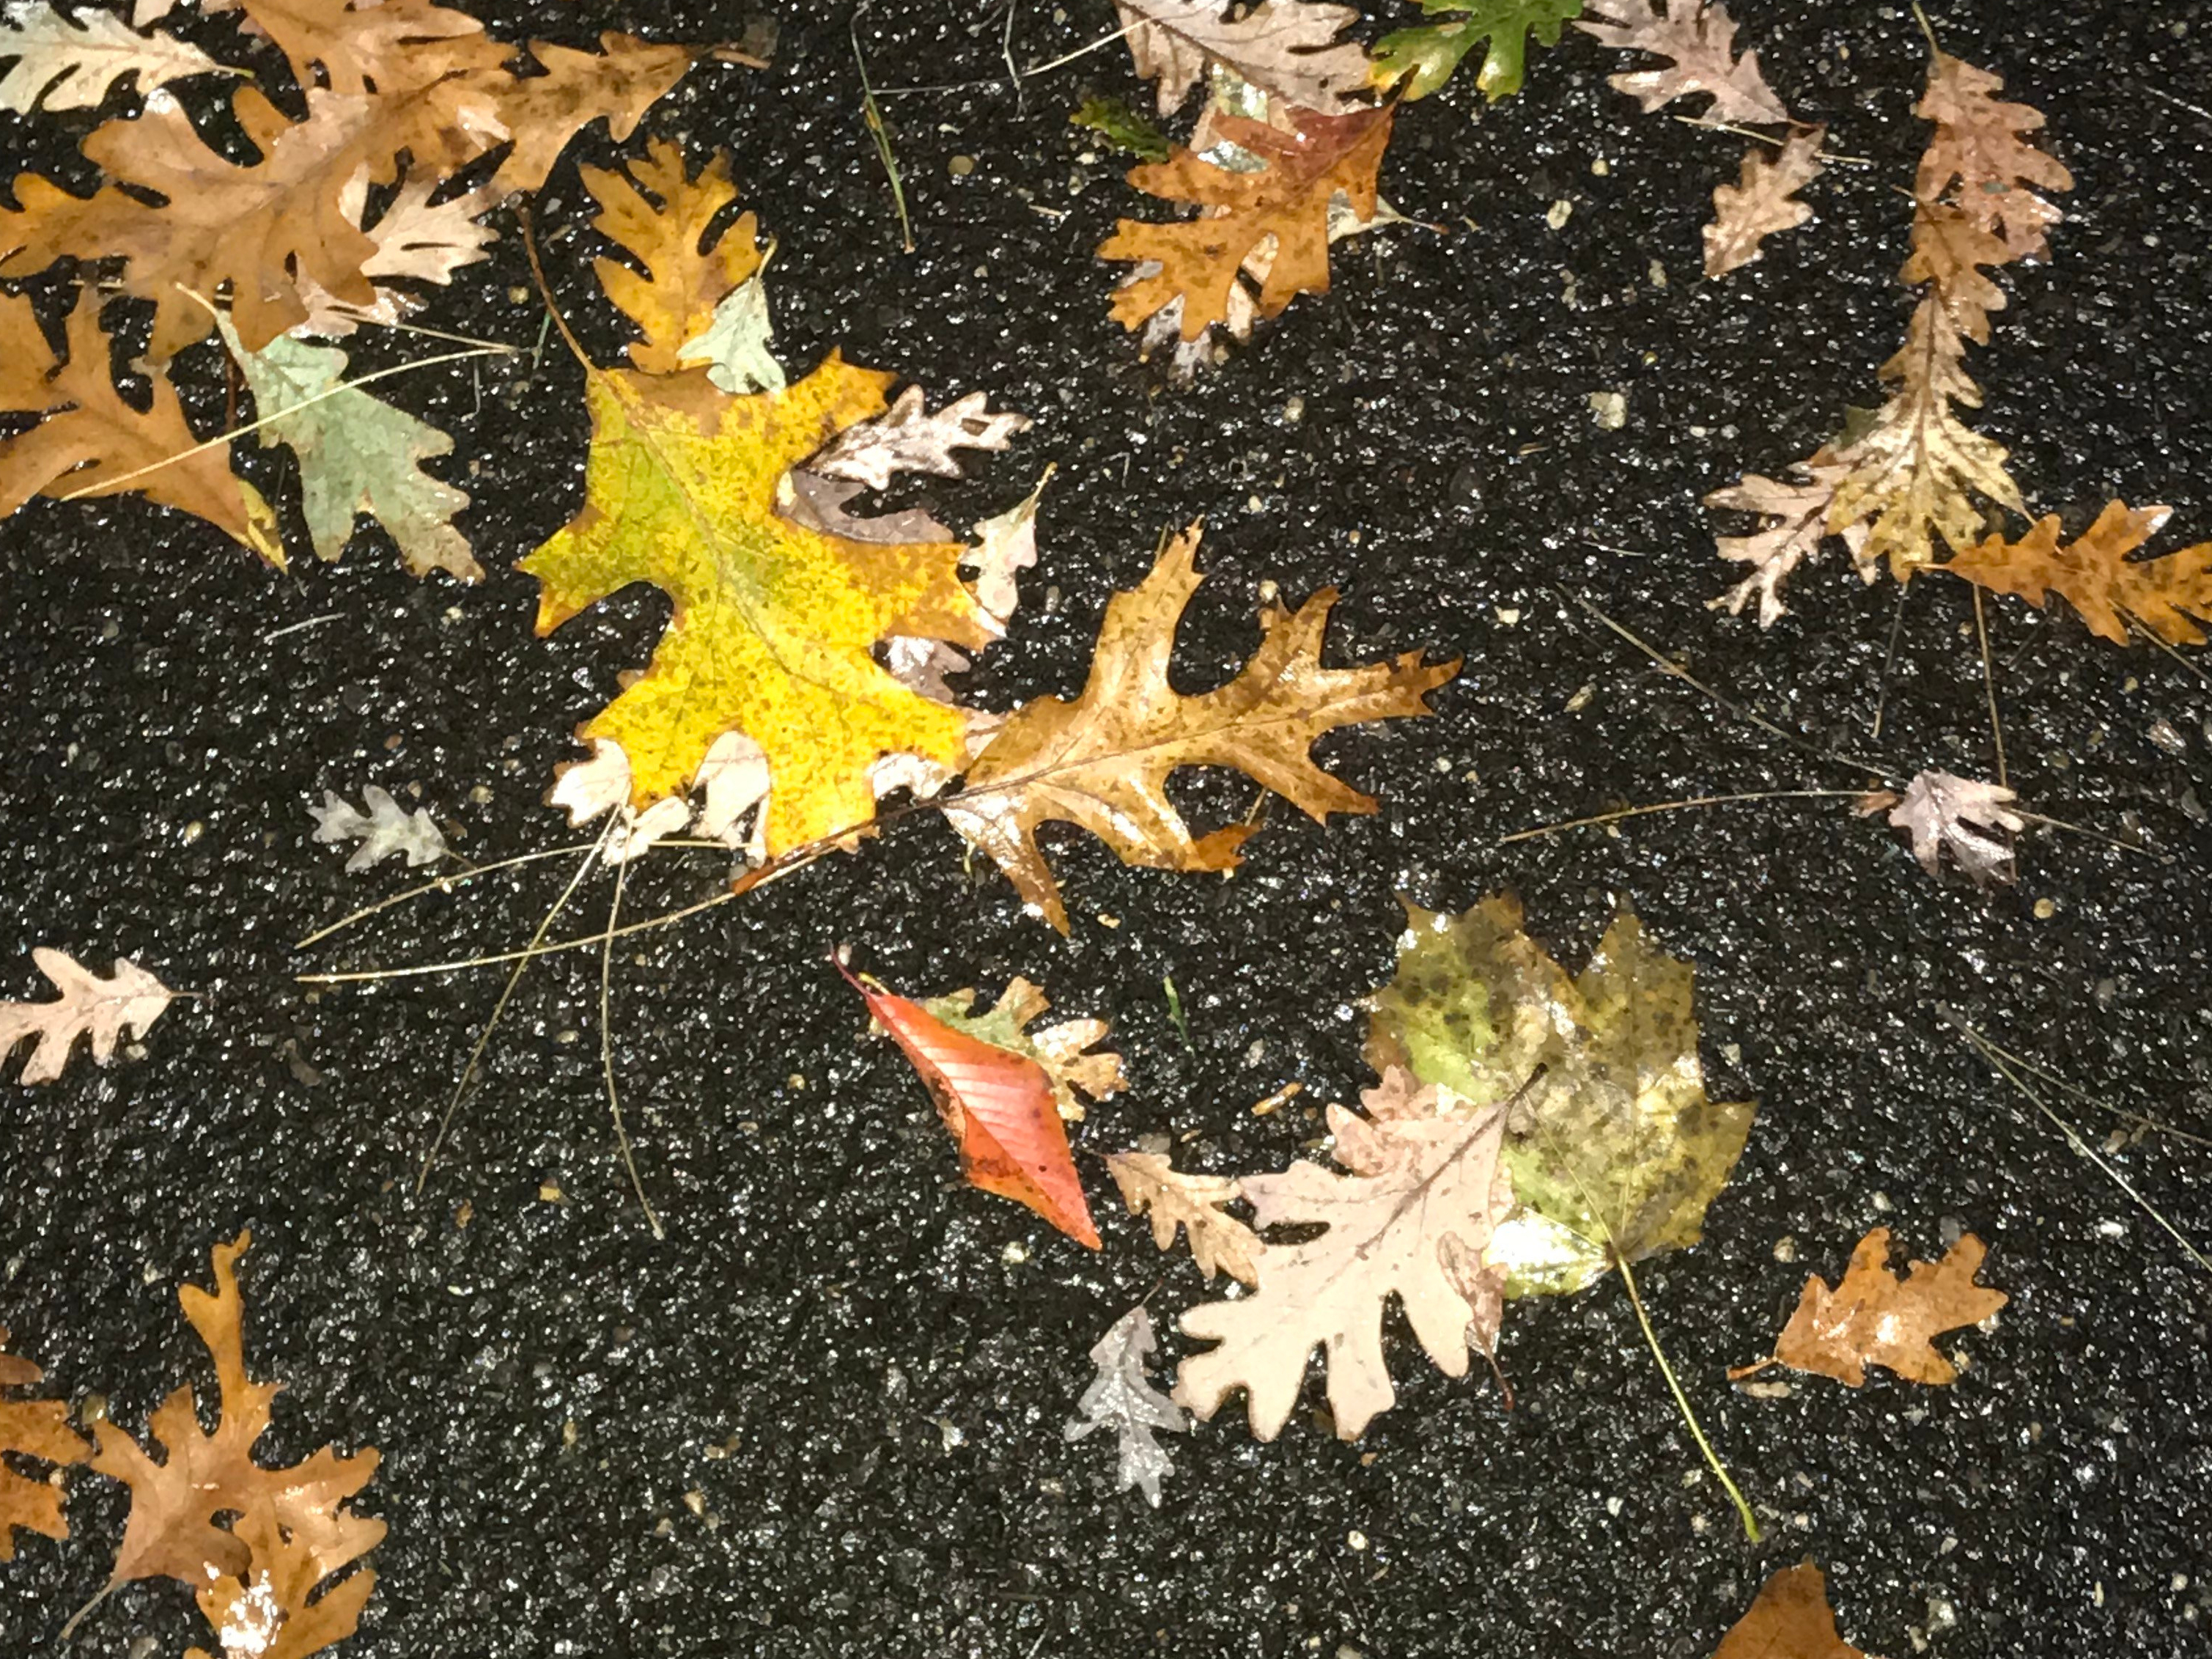 Rainy Autumn Day on a Walk 2018